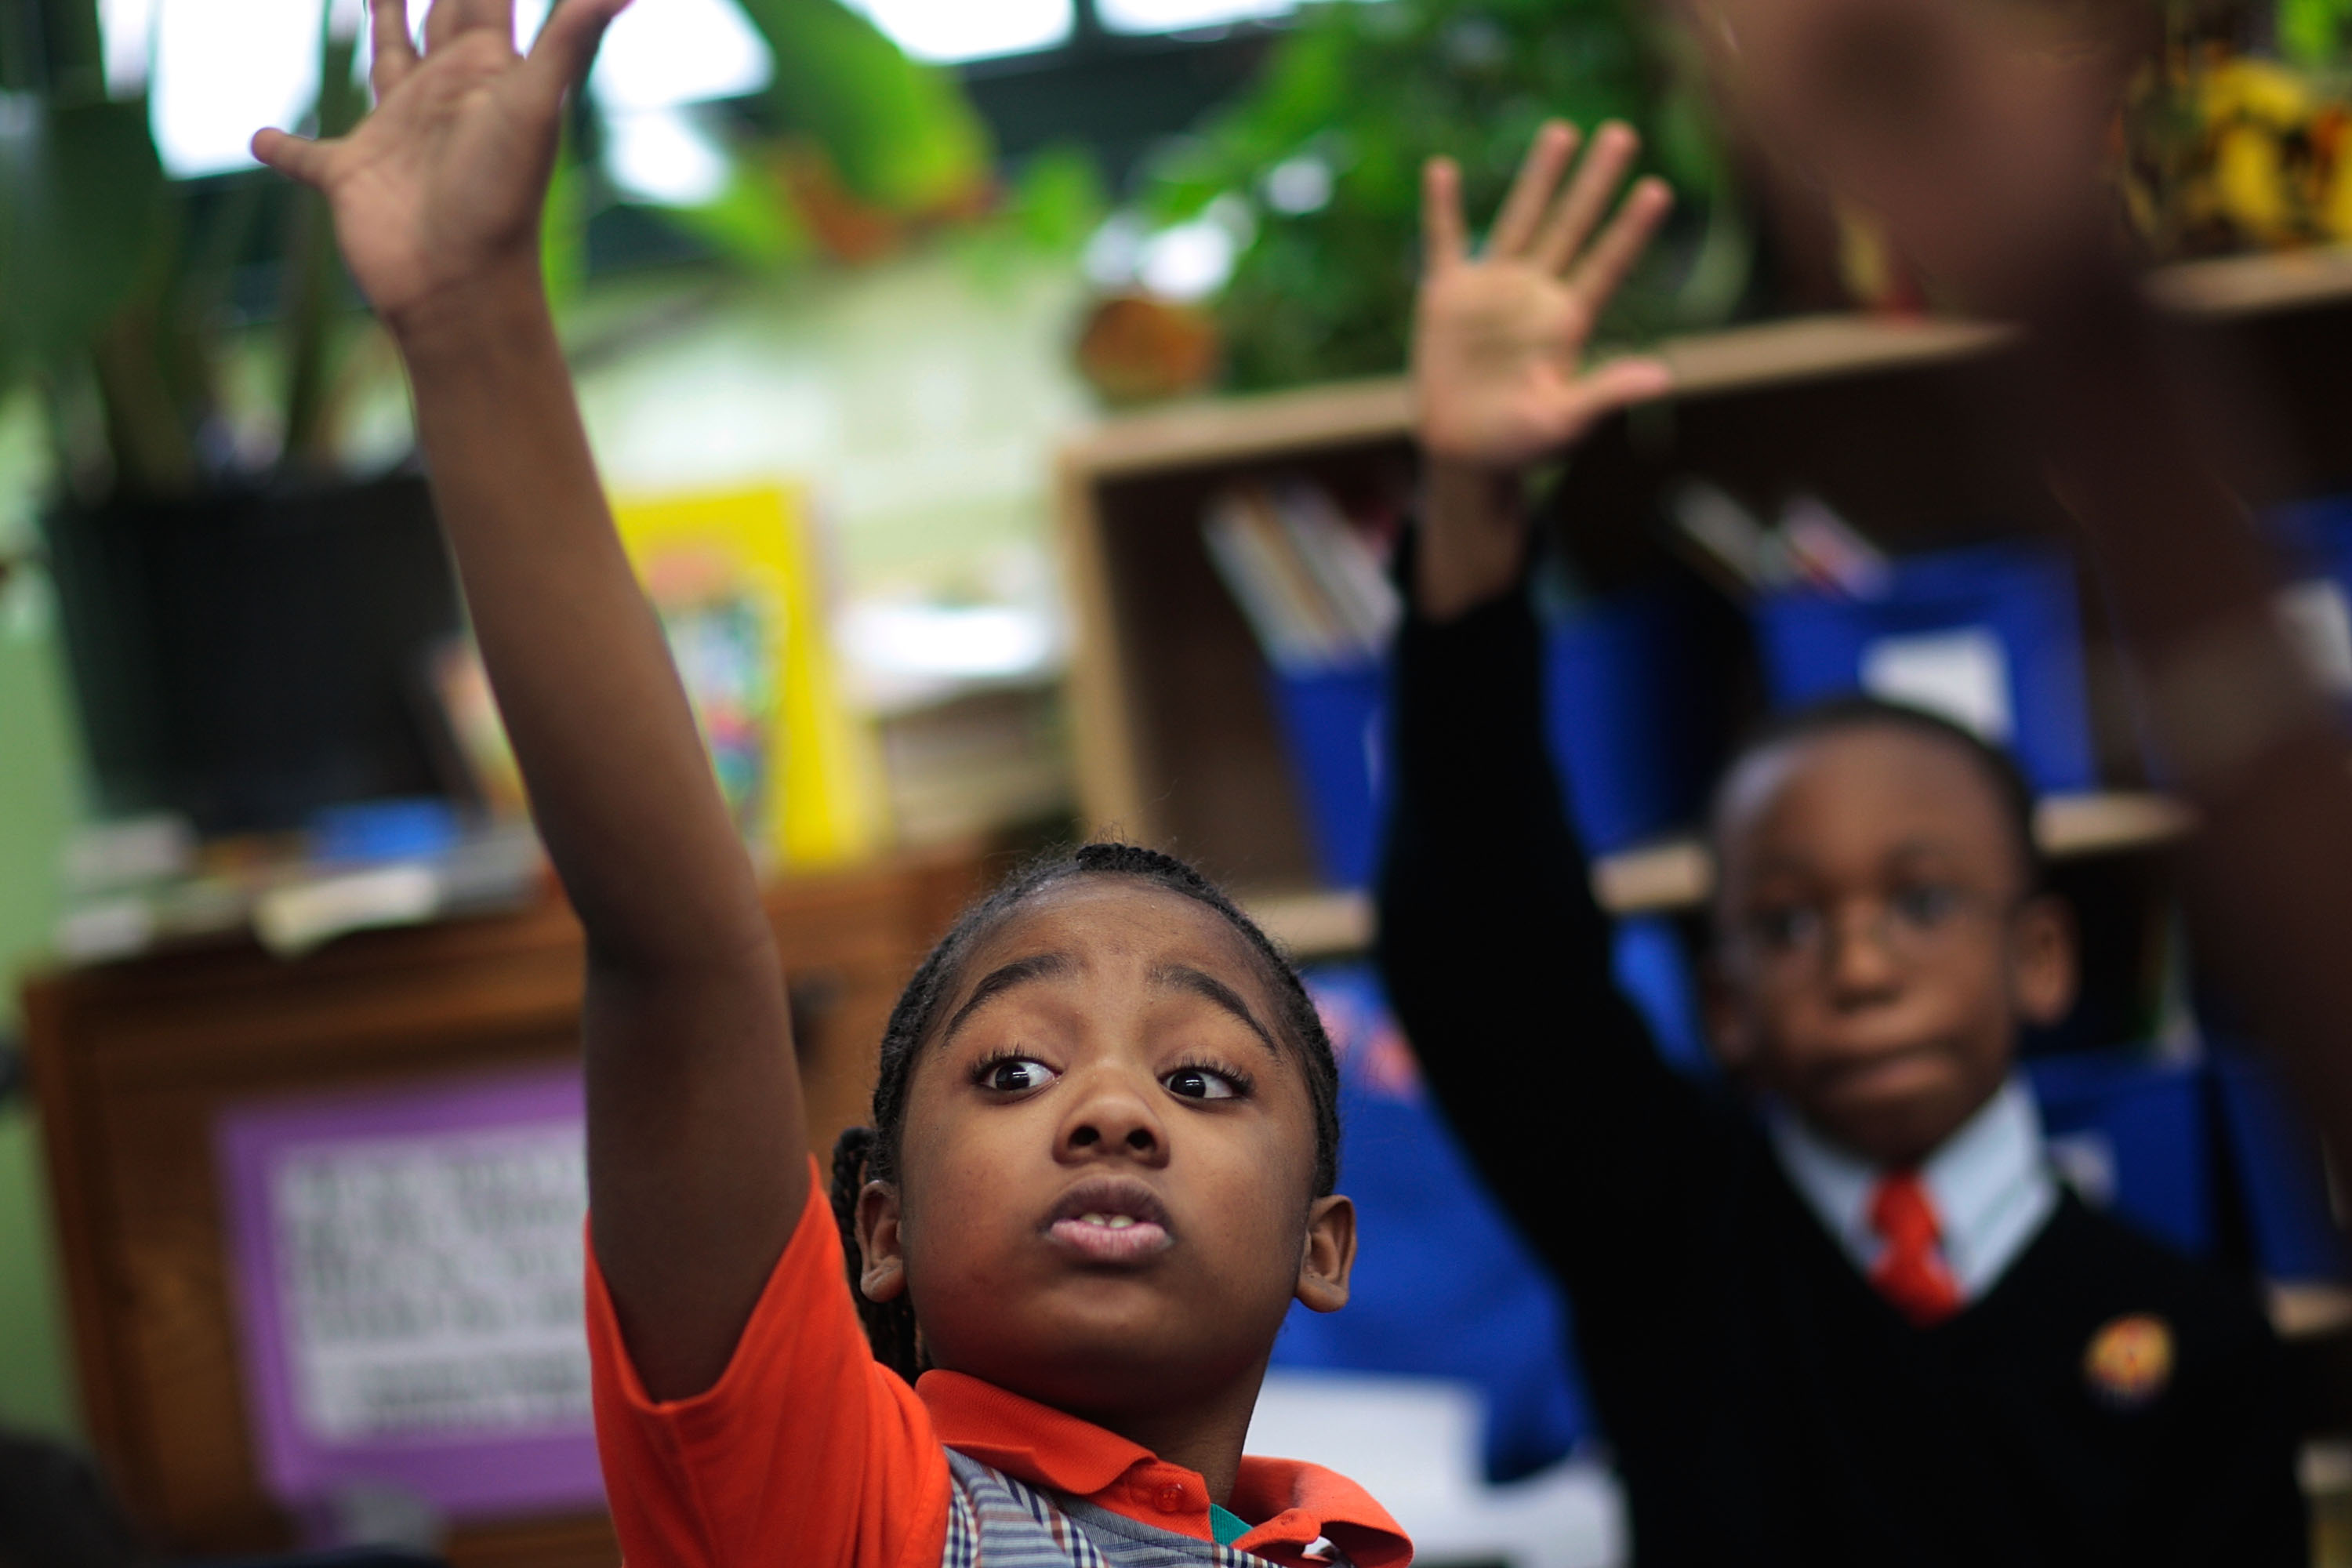 NEW YORK - MARCH 30: Third grade students Tyler Smalls (L) and Sekou Cisse raise their hands in reading comprehension class at Harlem Success Academy, a free, public elementary charter school March 30, 2009 in the Harlem neighborhood of New York City. All students at the charter school are required to wear uniforms. (Photo by Chris Hondros/Getty Images)